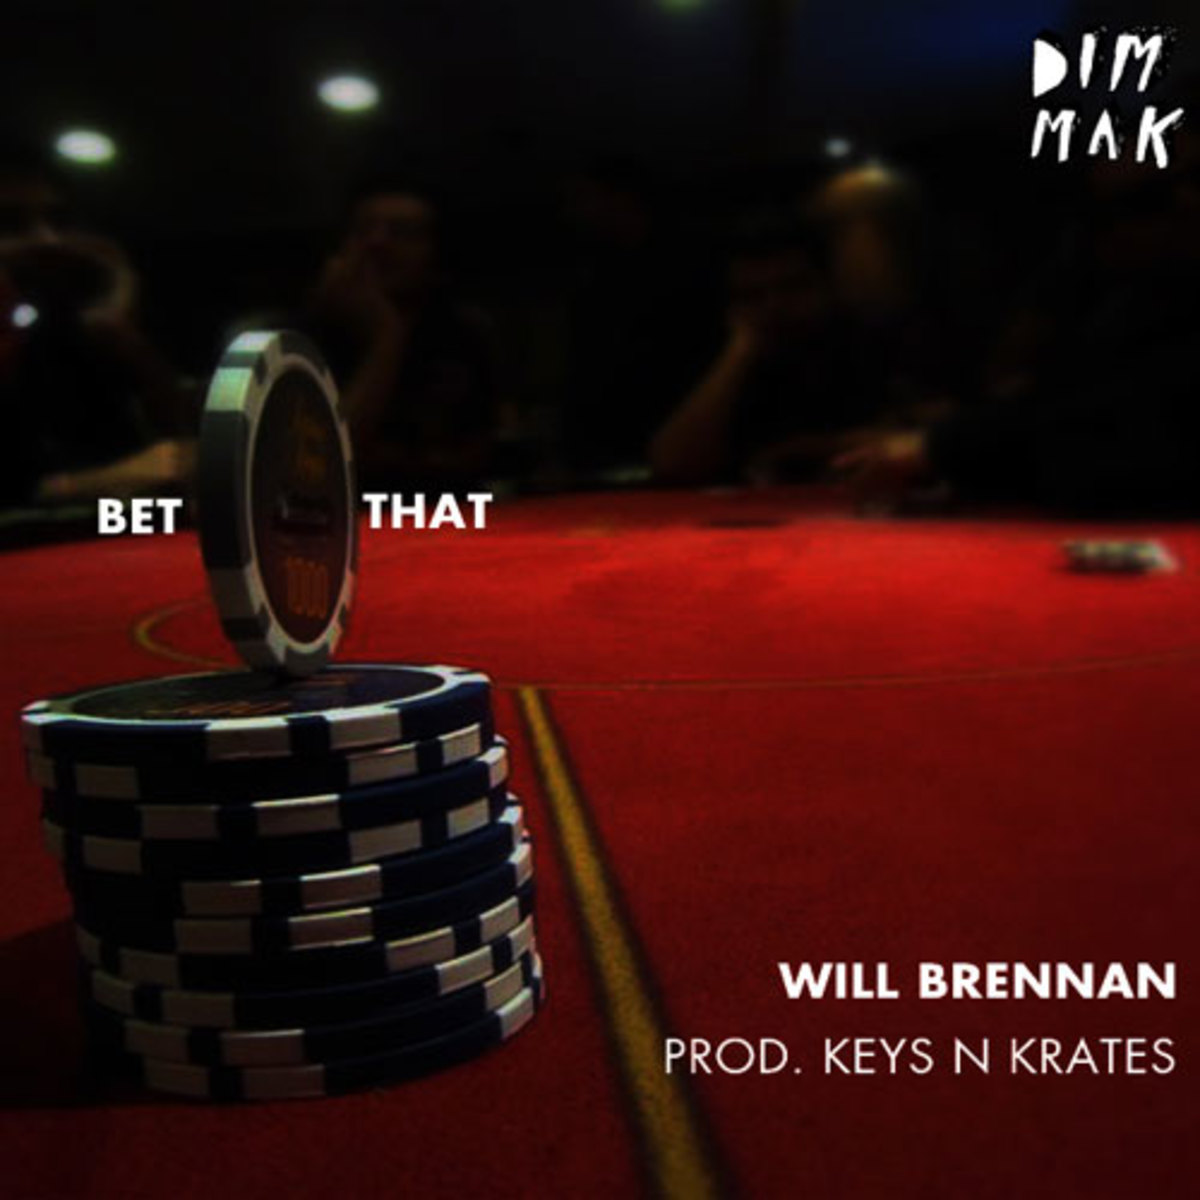 willbrennan-betthat.jpg